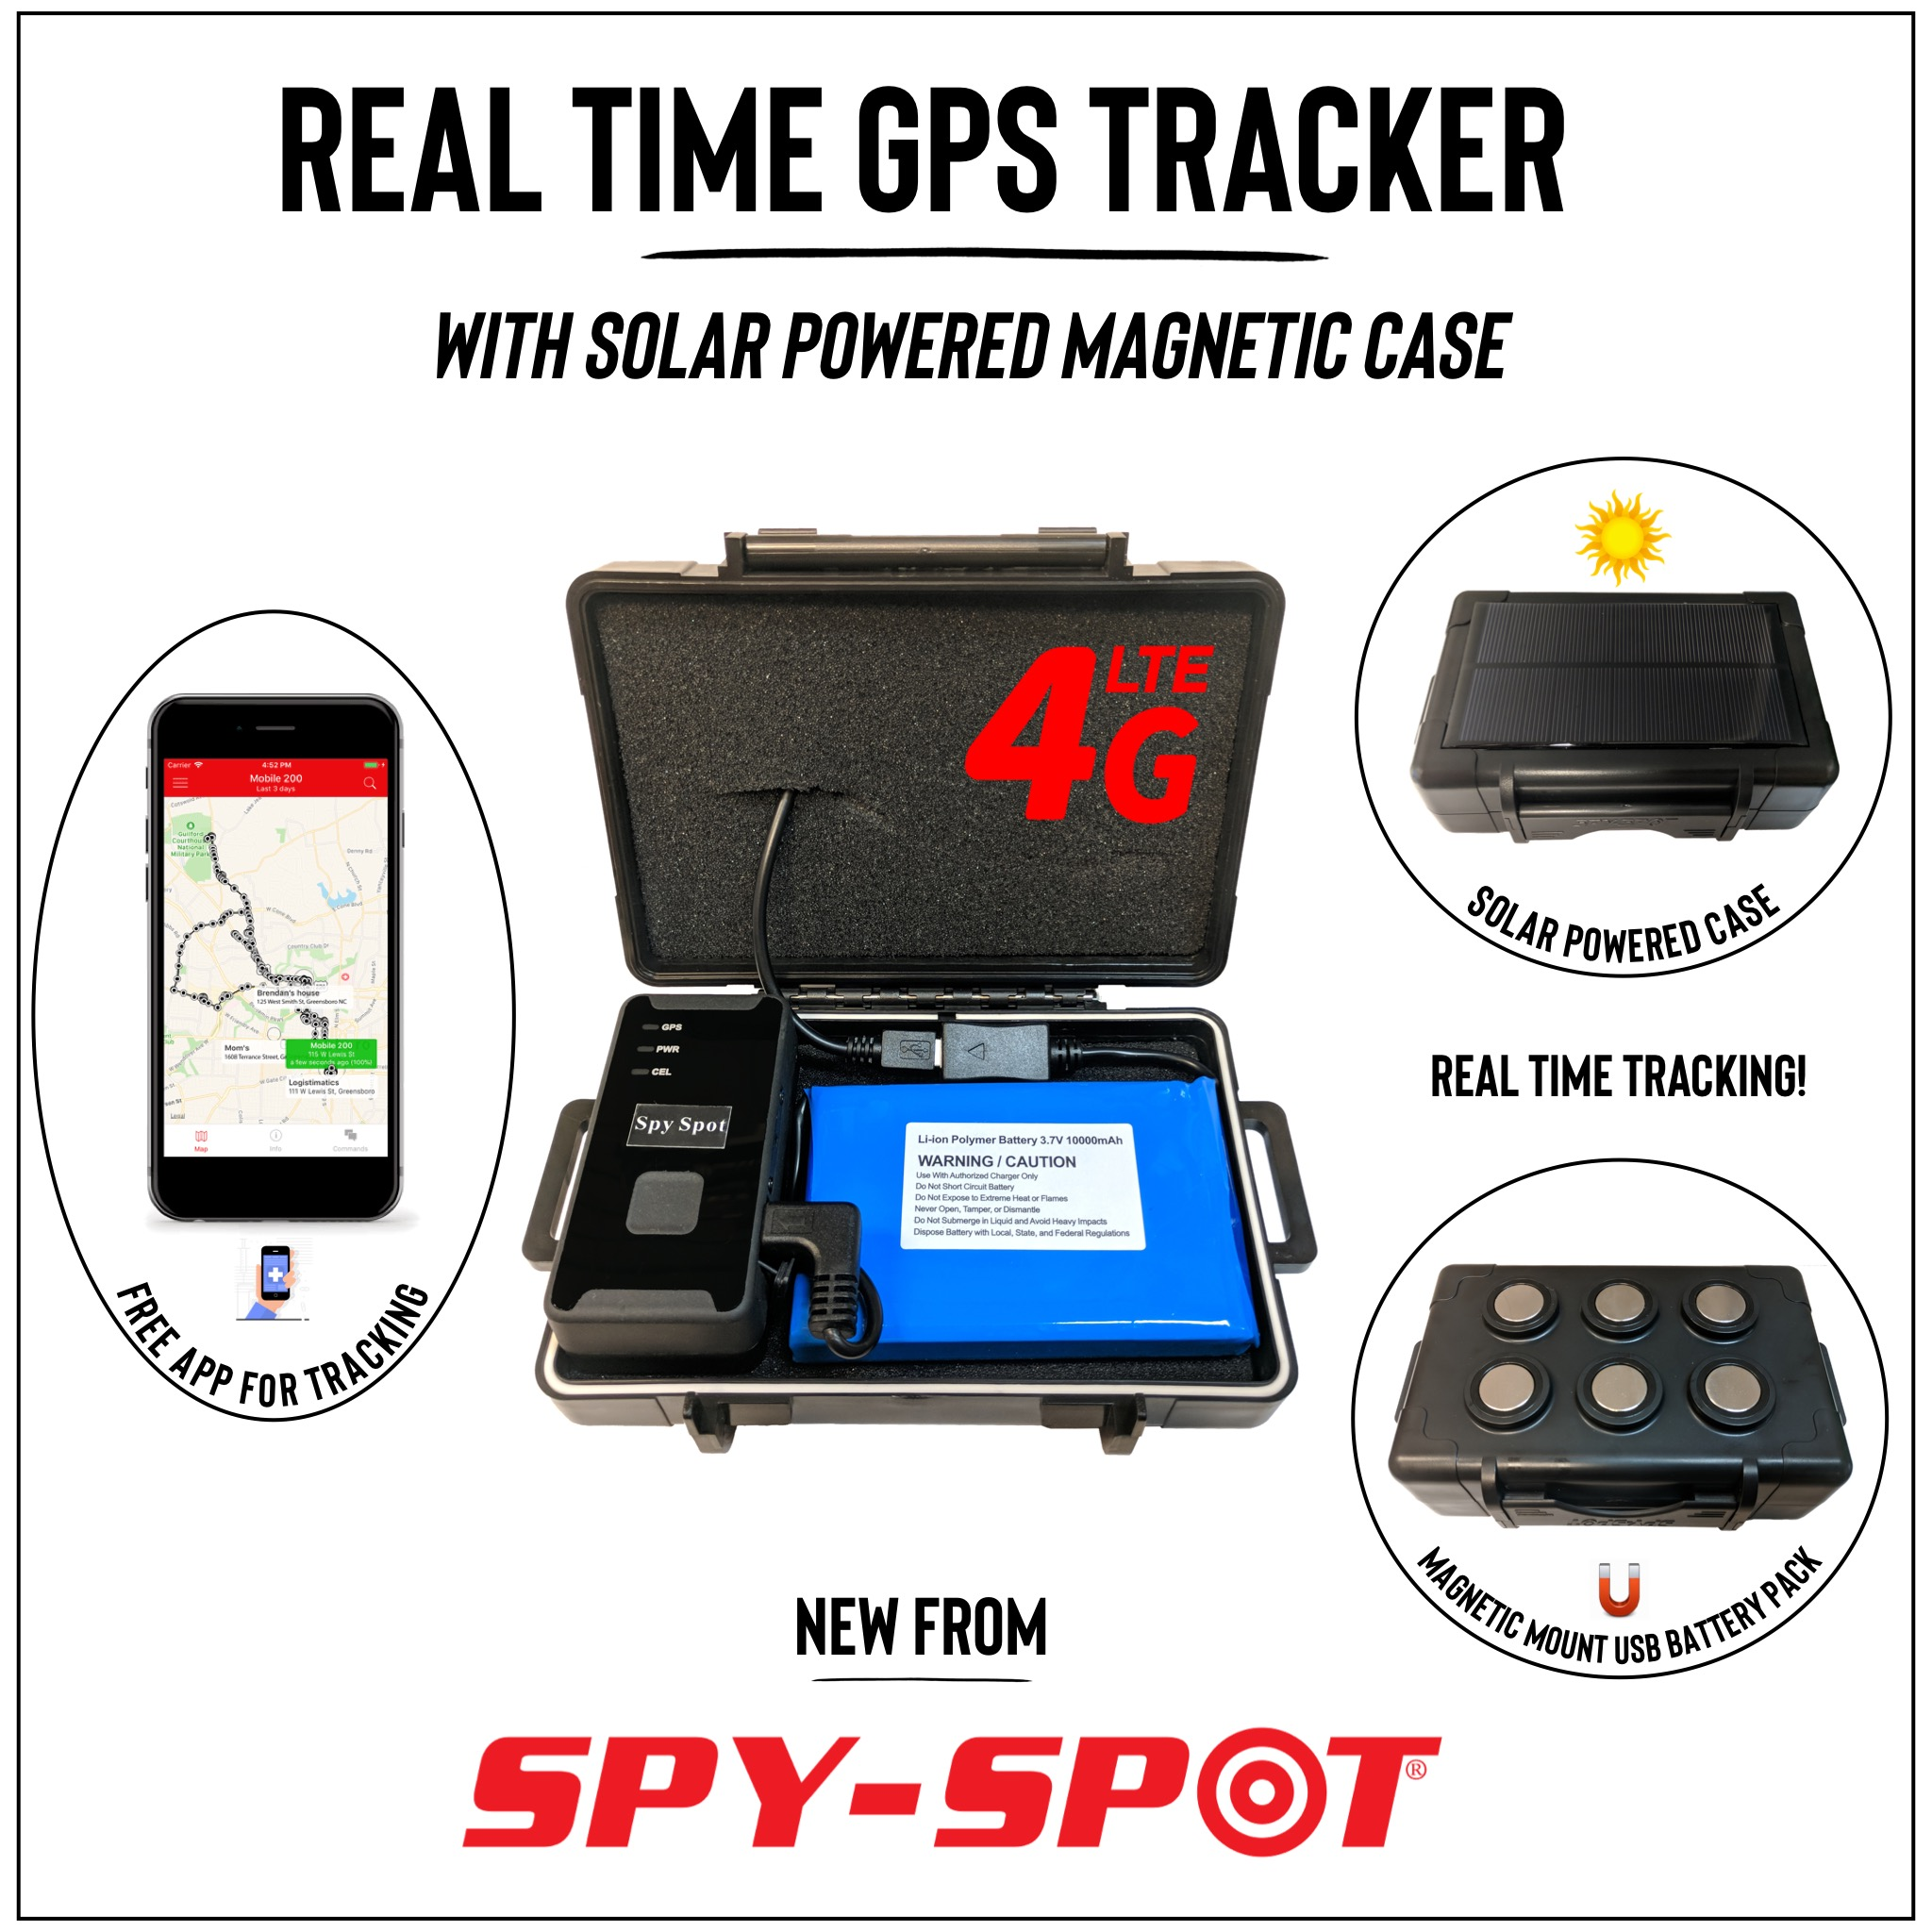 queclink-spy-spot-gl300ma-4g-lte-gps-micro-tracker-and-solar-powered-magnetic-case-usb-battery-pack.jpg